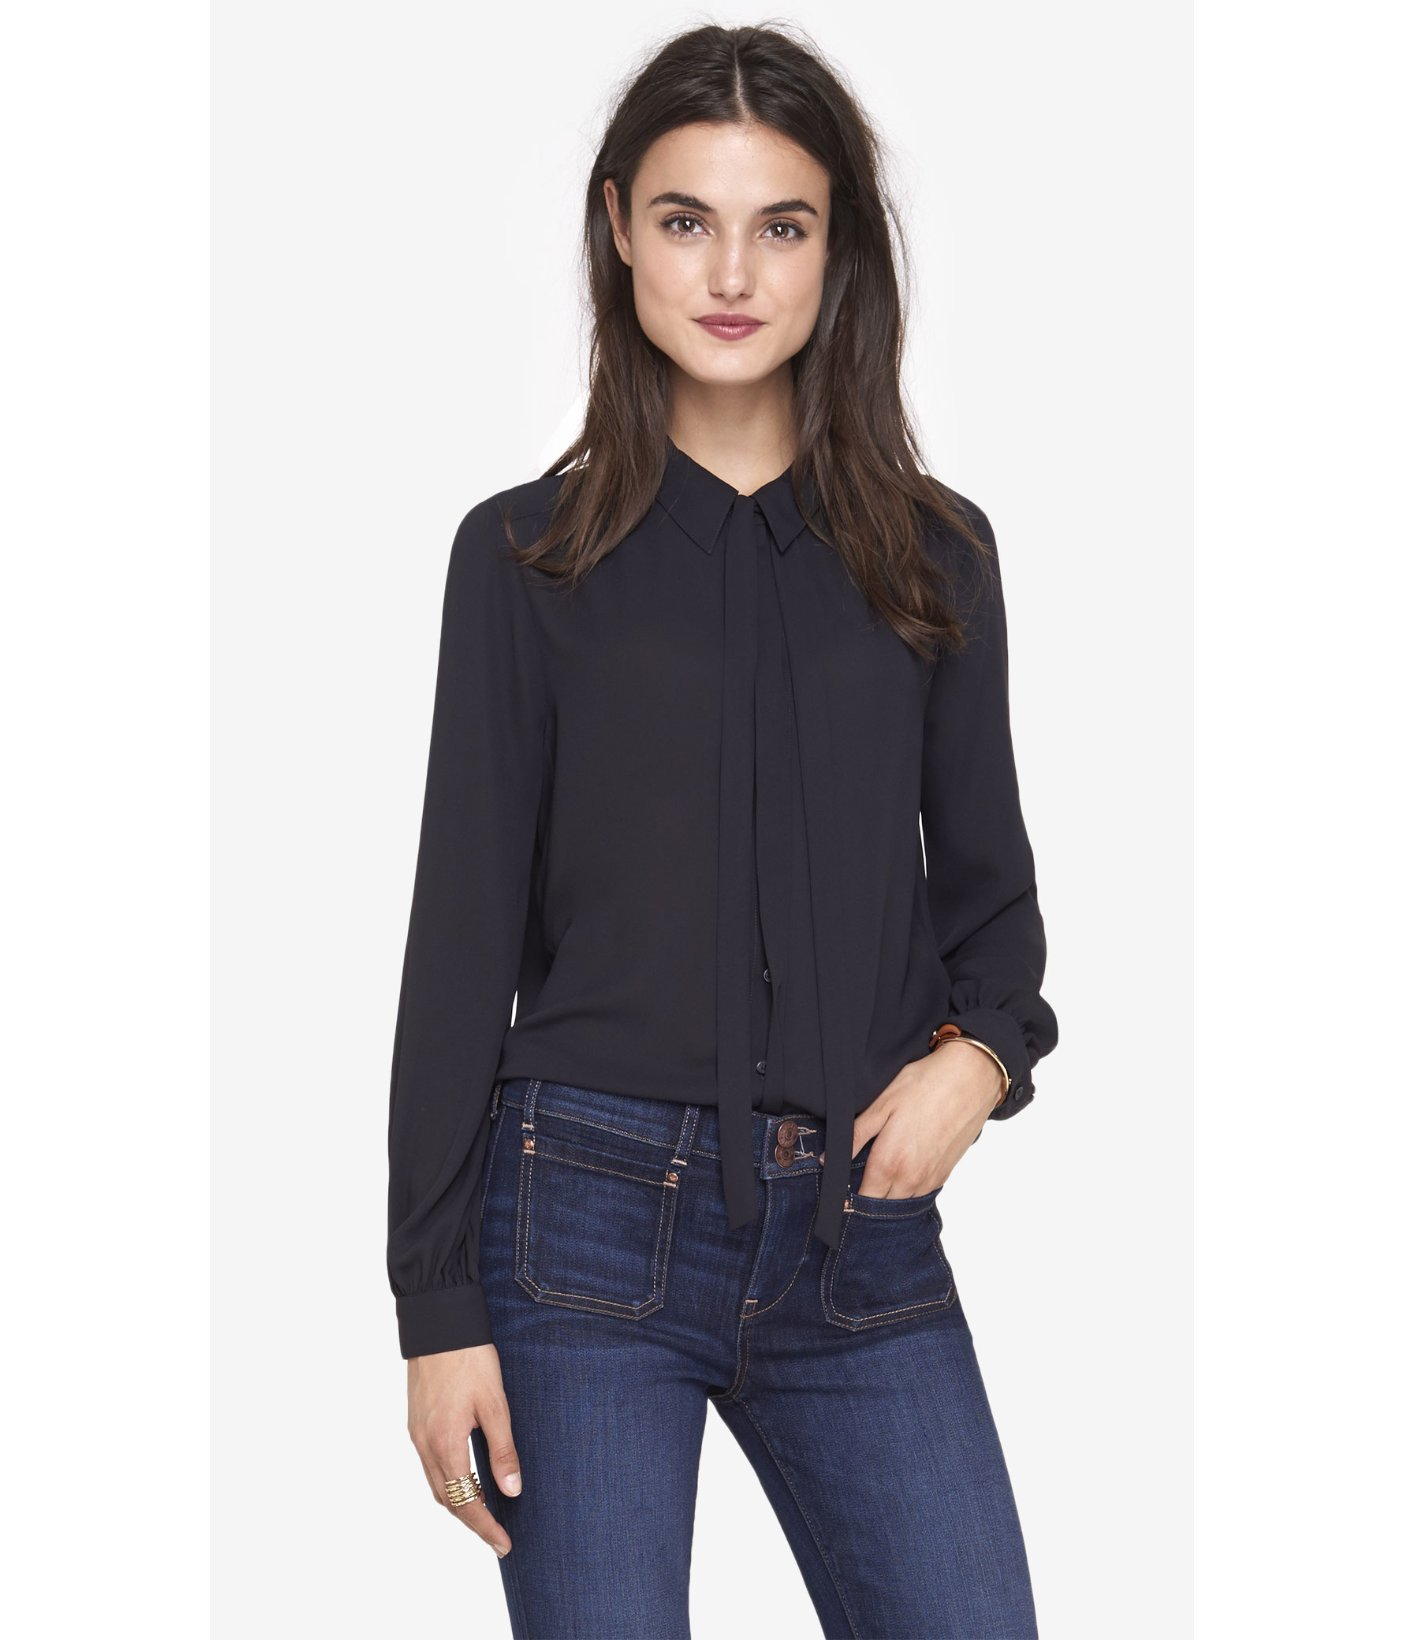 Lyst express black long sleeve tie neck blouse in black for Express shirt and tie